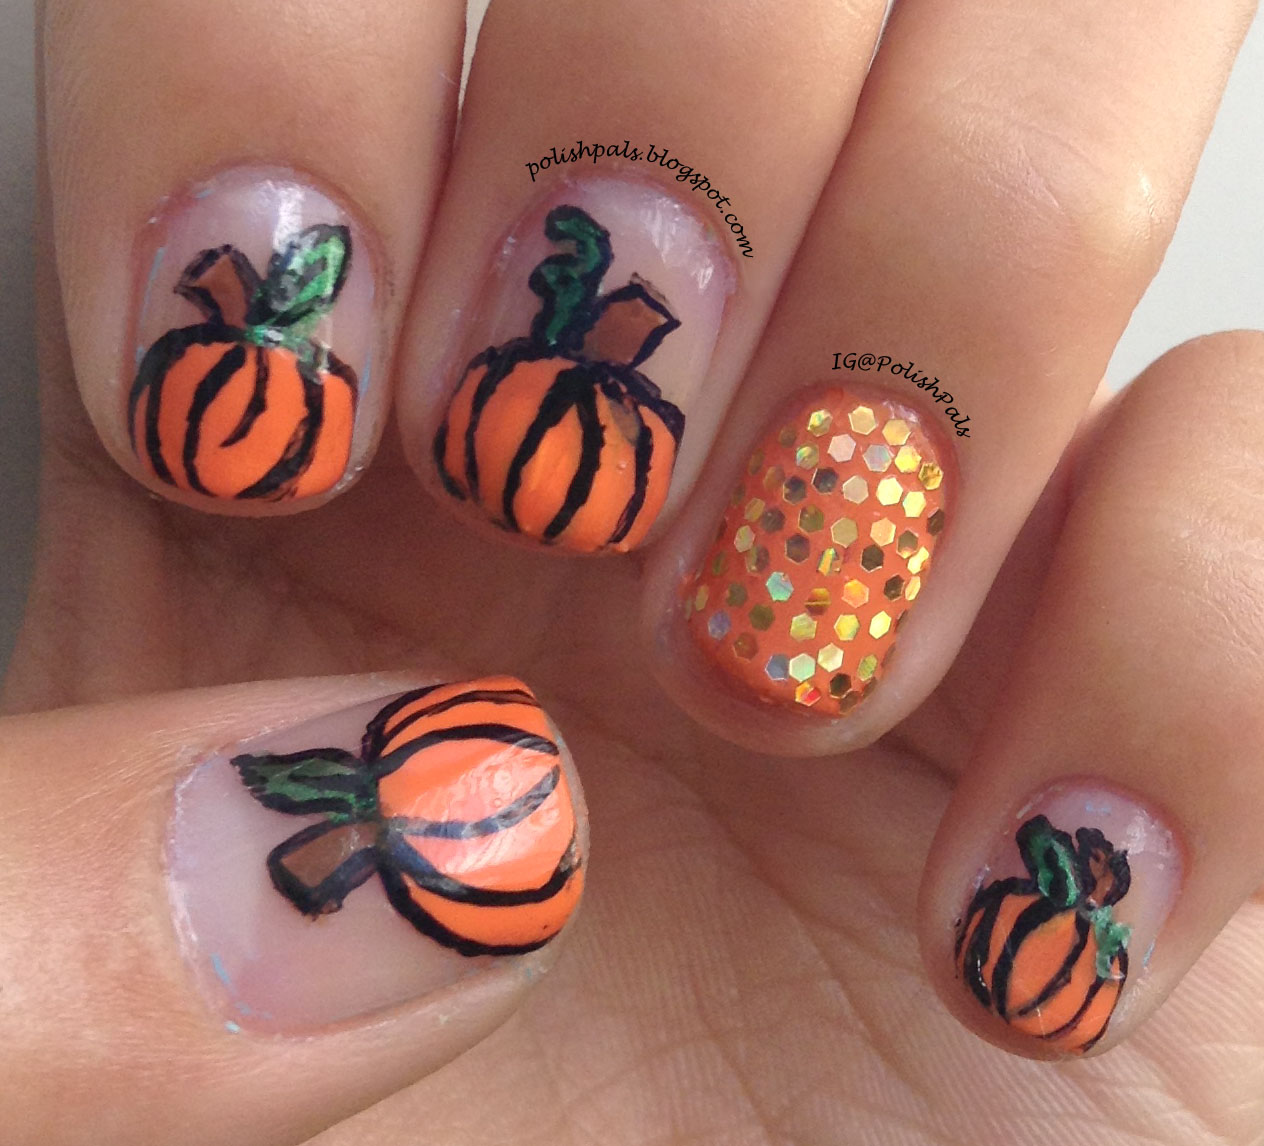 Outstanding Cute Fall Nails Illustration - Nail Art Ideas - morihati.com